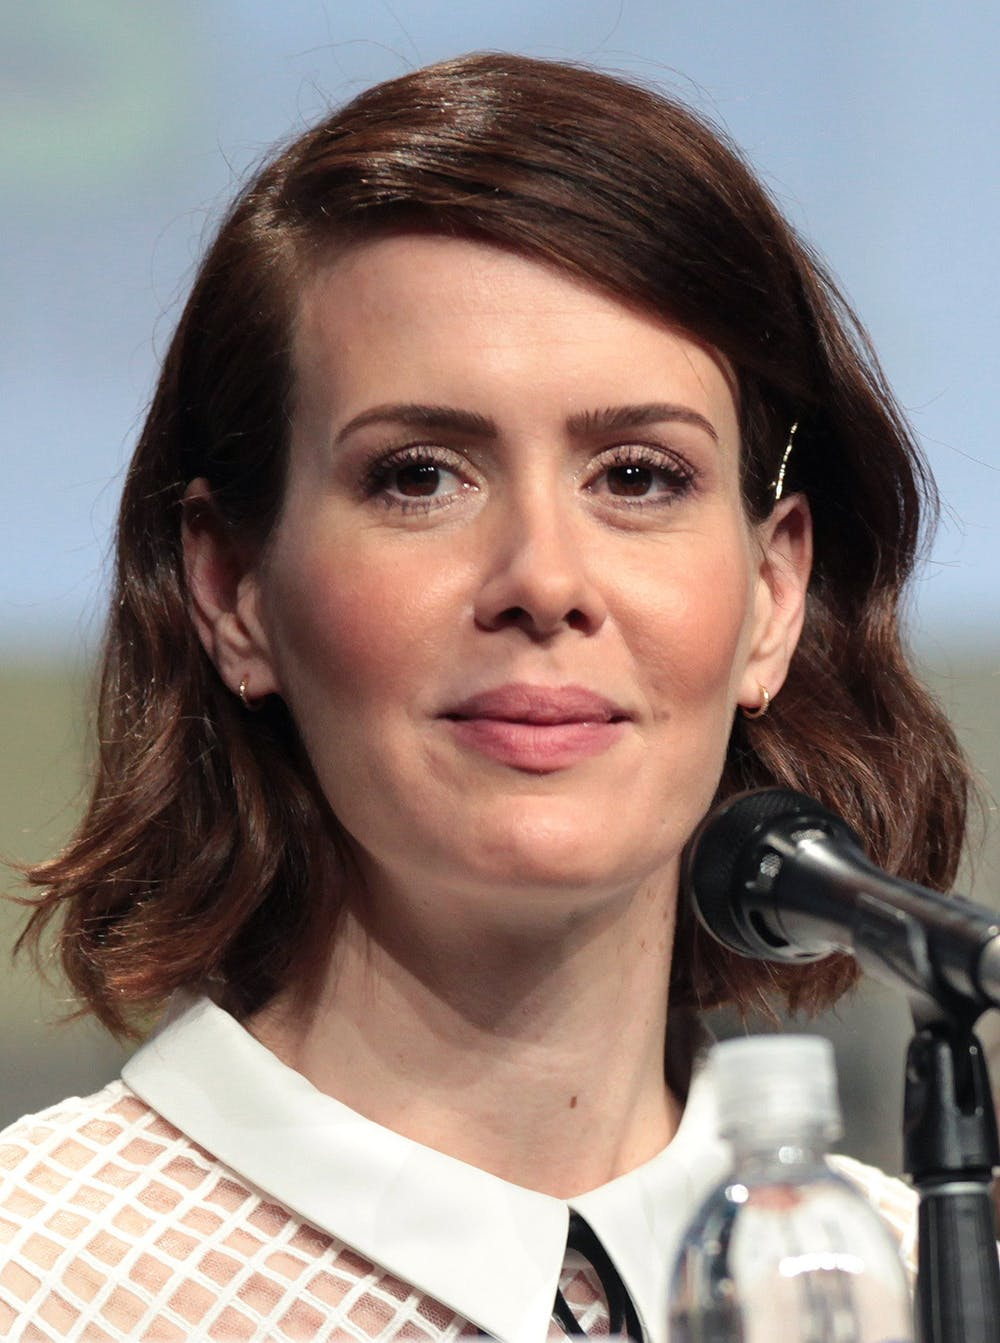 <p>Alongside Sarah Paulson, Kiera Allen provides important representation for disabled people in film with her captivating performance.</p>